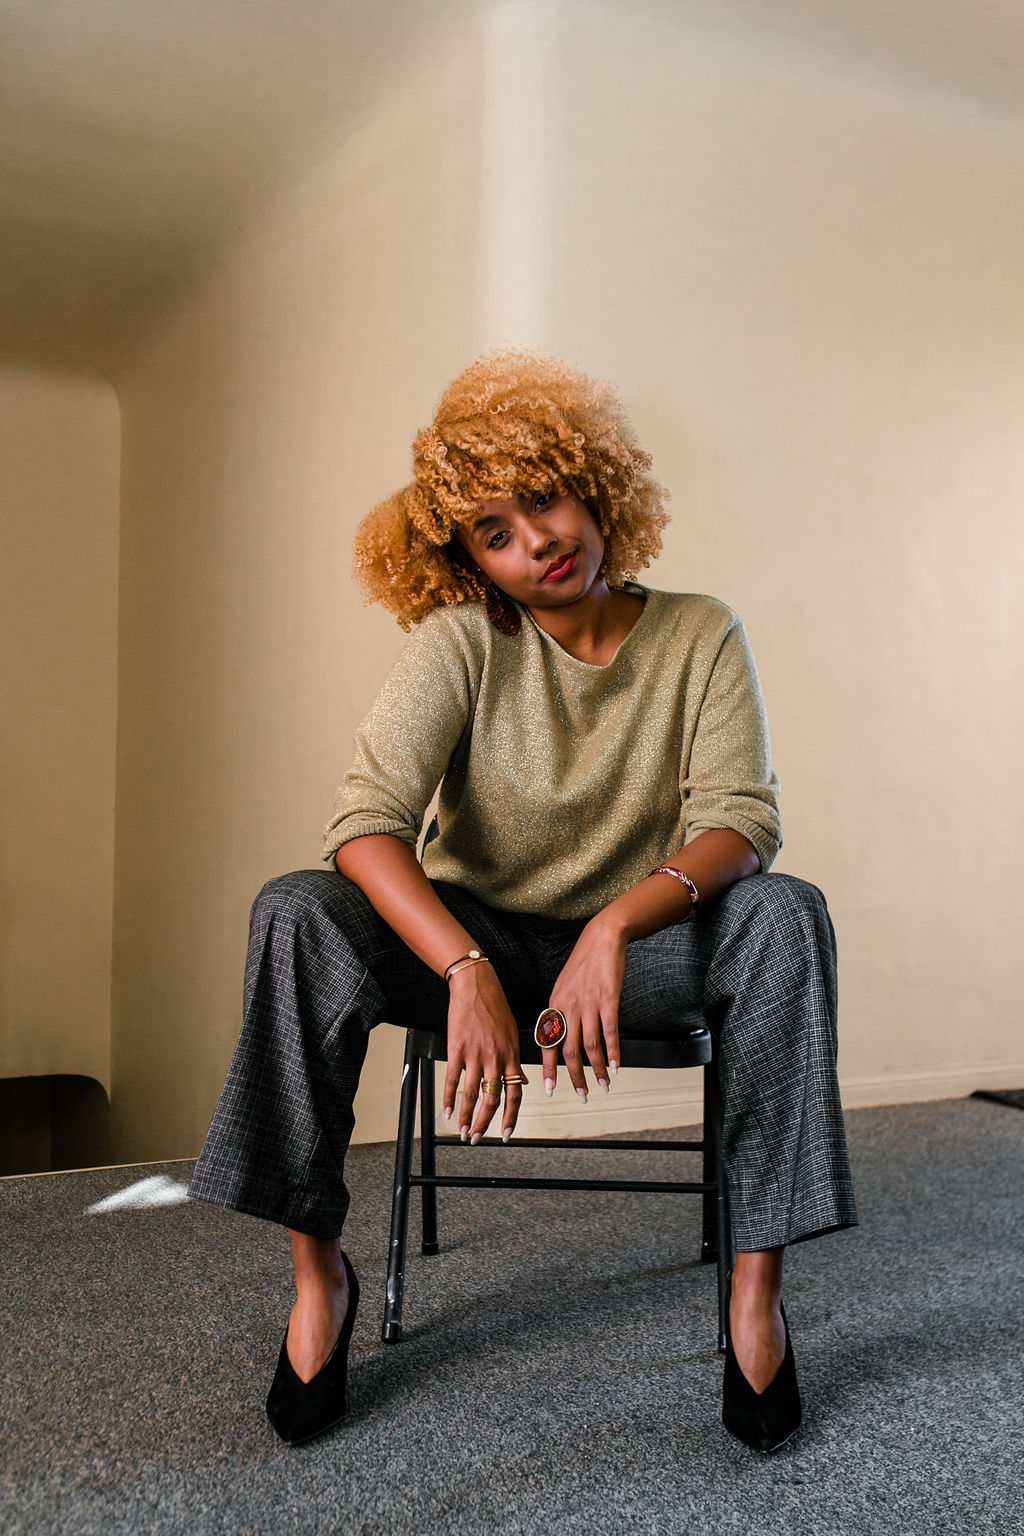 reflect -black woman with blonde curly hair wearing a work outfit